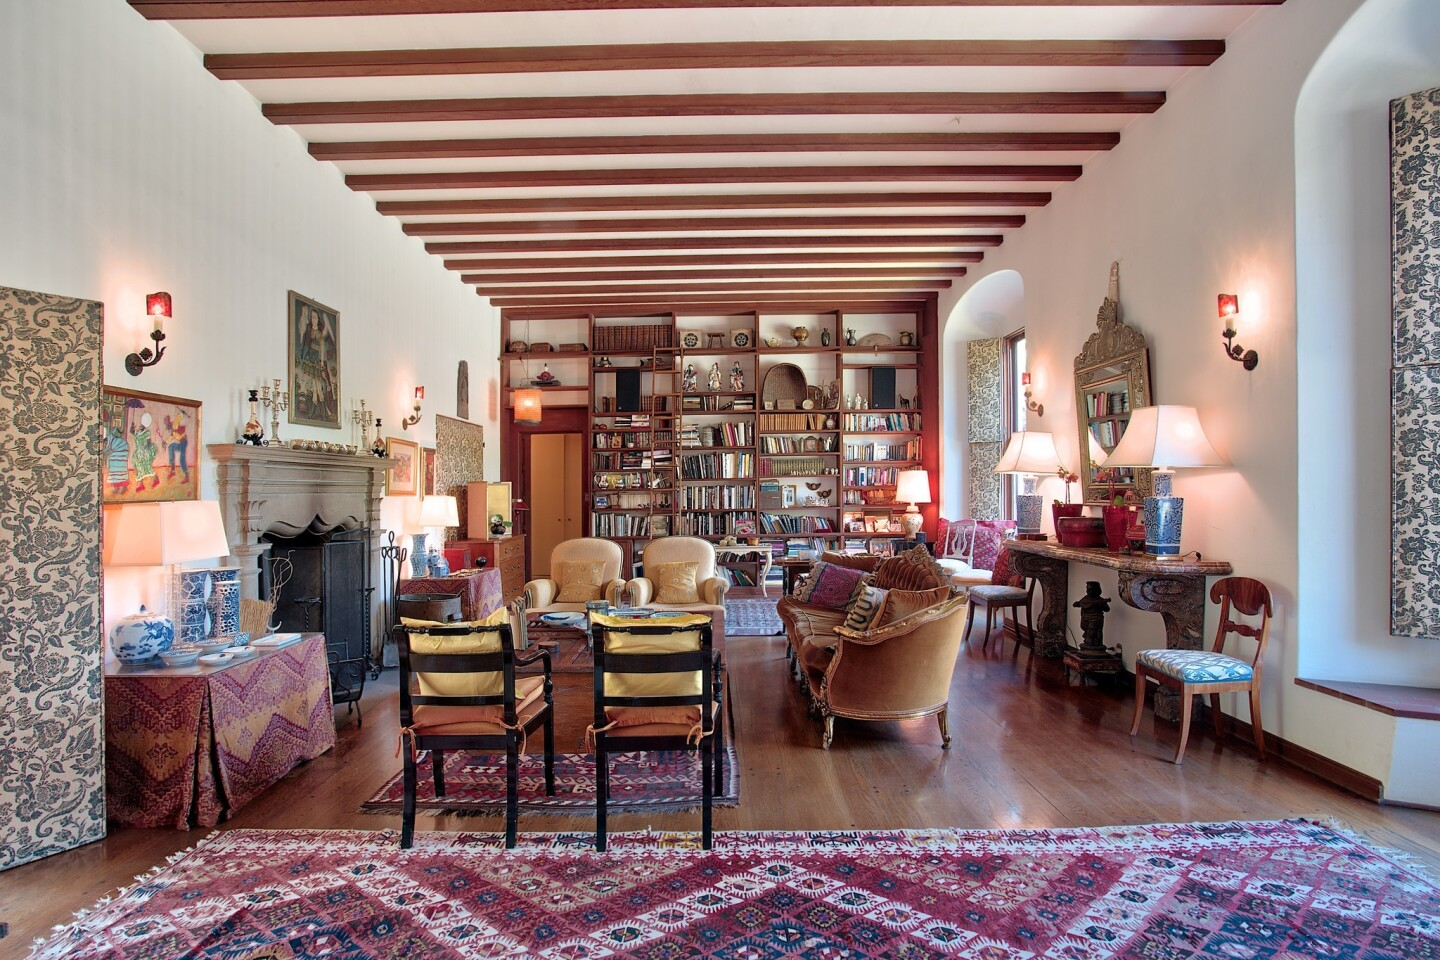 Home of the Day: History and hospitality on Grand Avenue in Pasadena